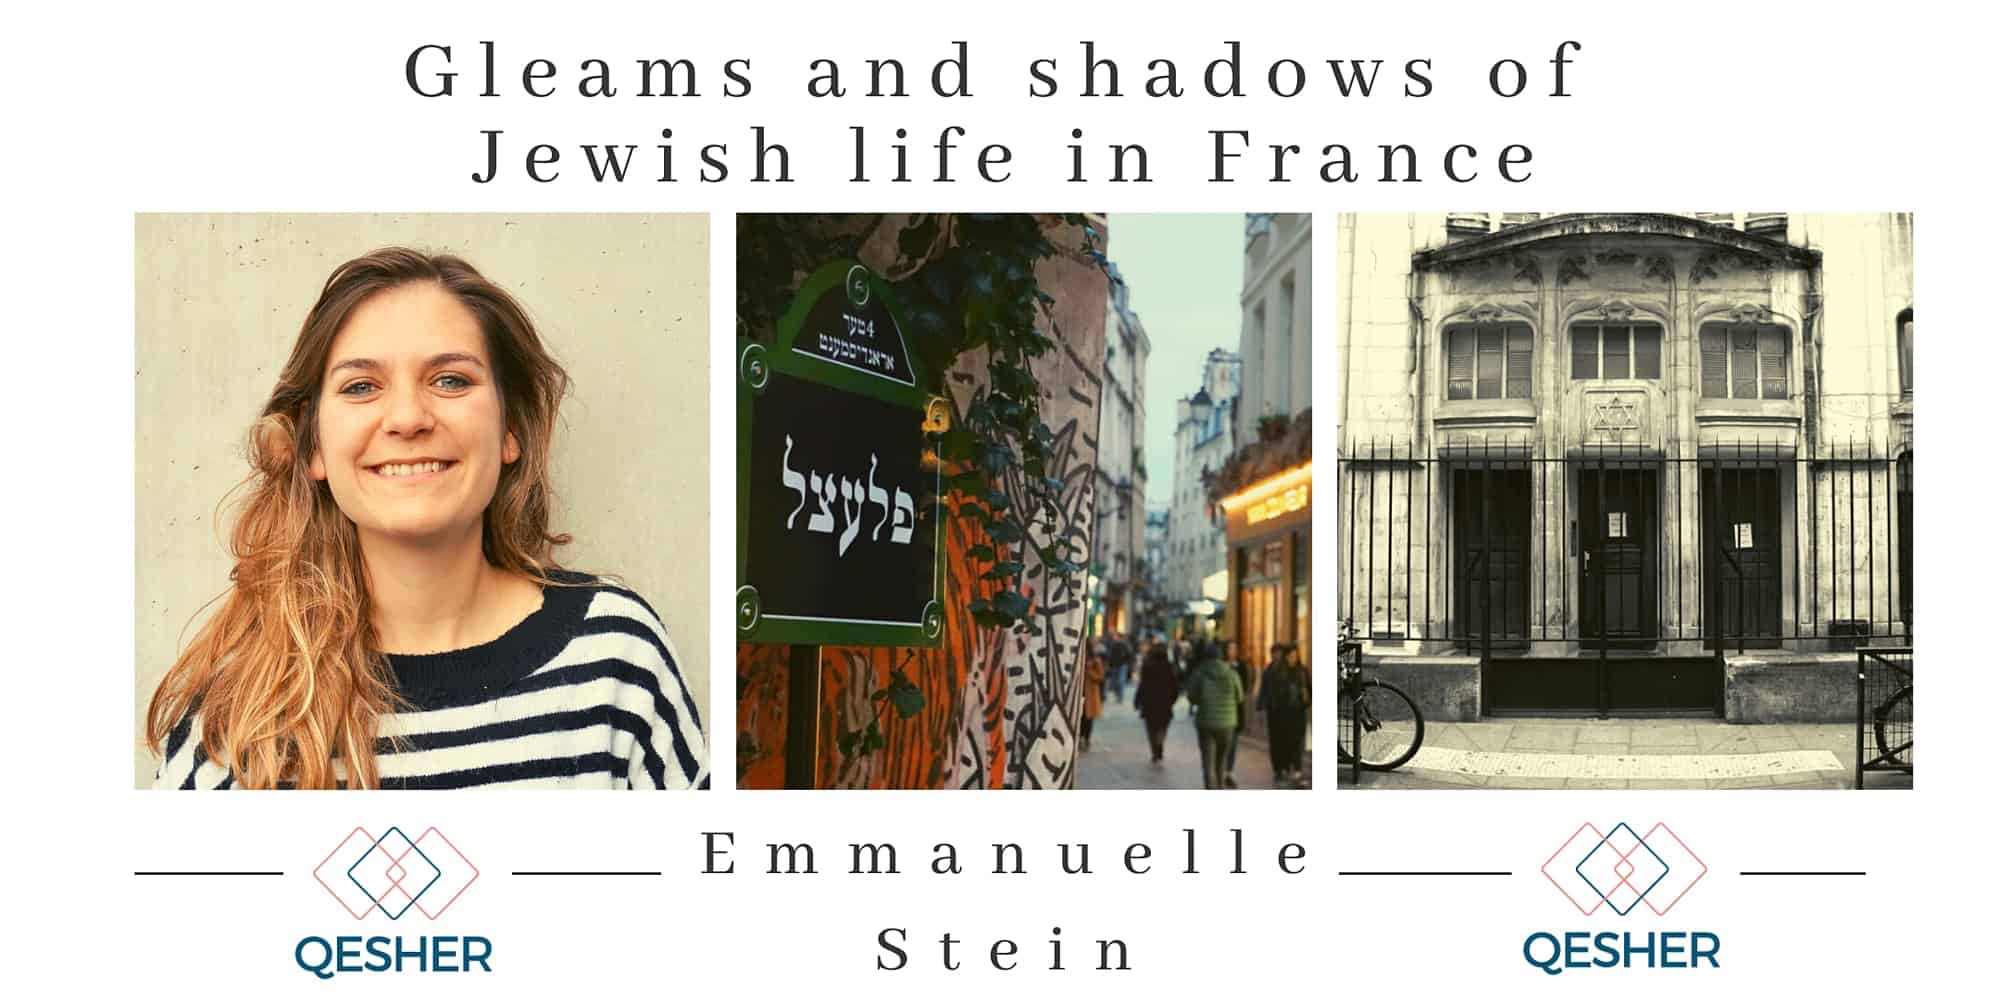 Gleams and shadows of Jewish life in France